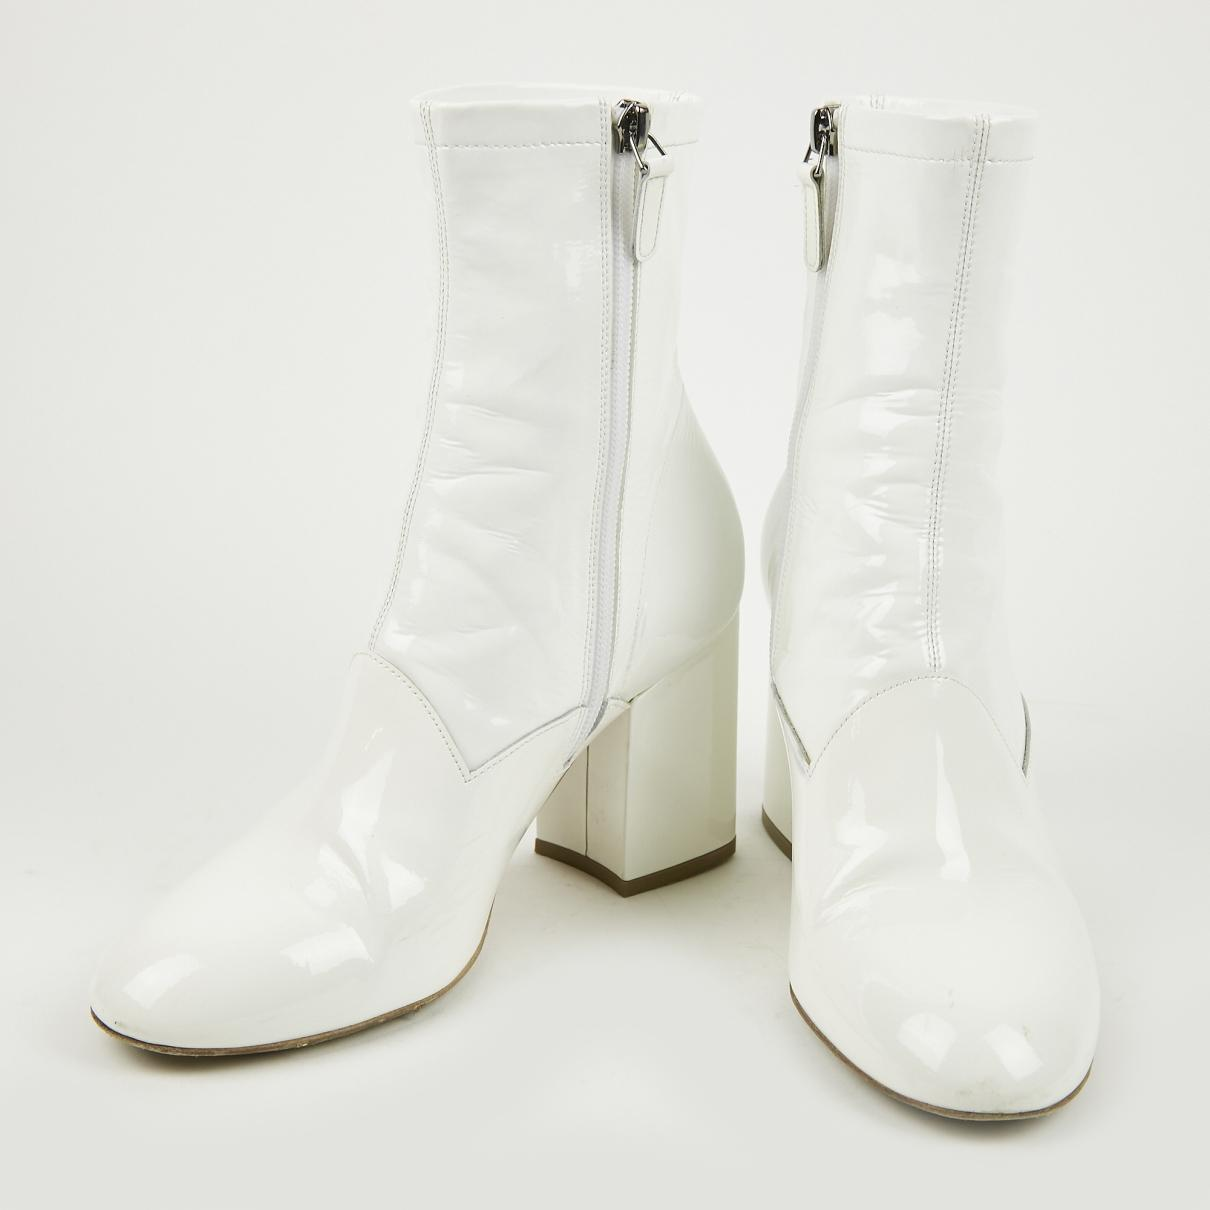 8a4f07922fa Laurence Dacade - White Patent Leather Boot - Lyst. View fullscreen